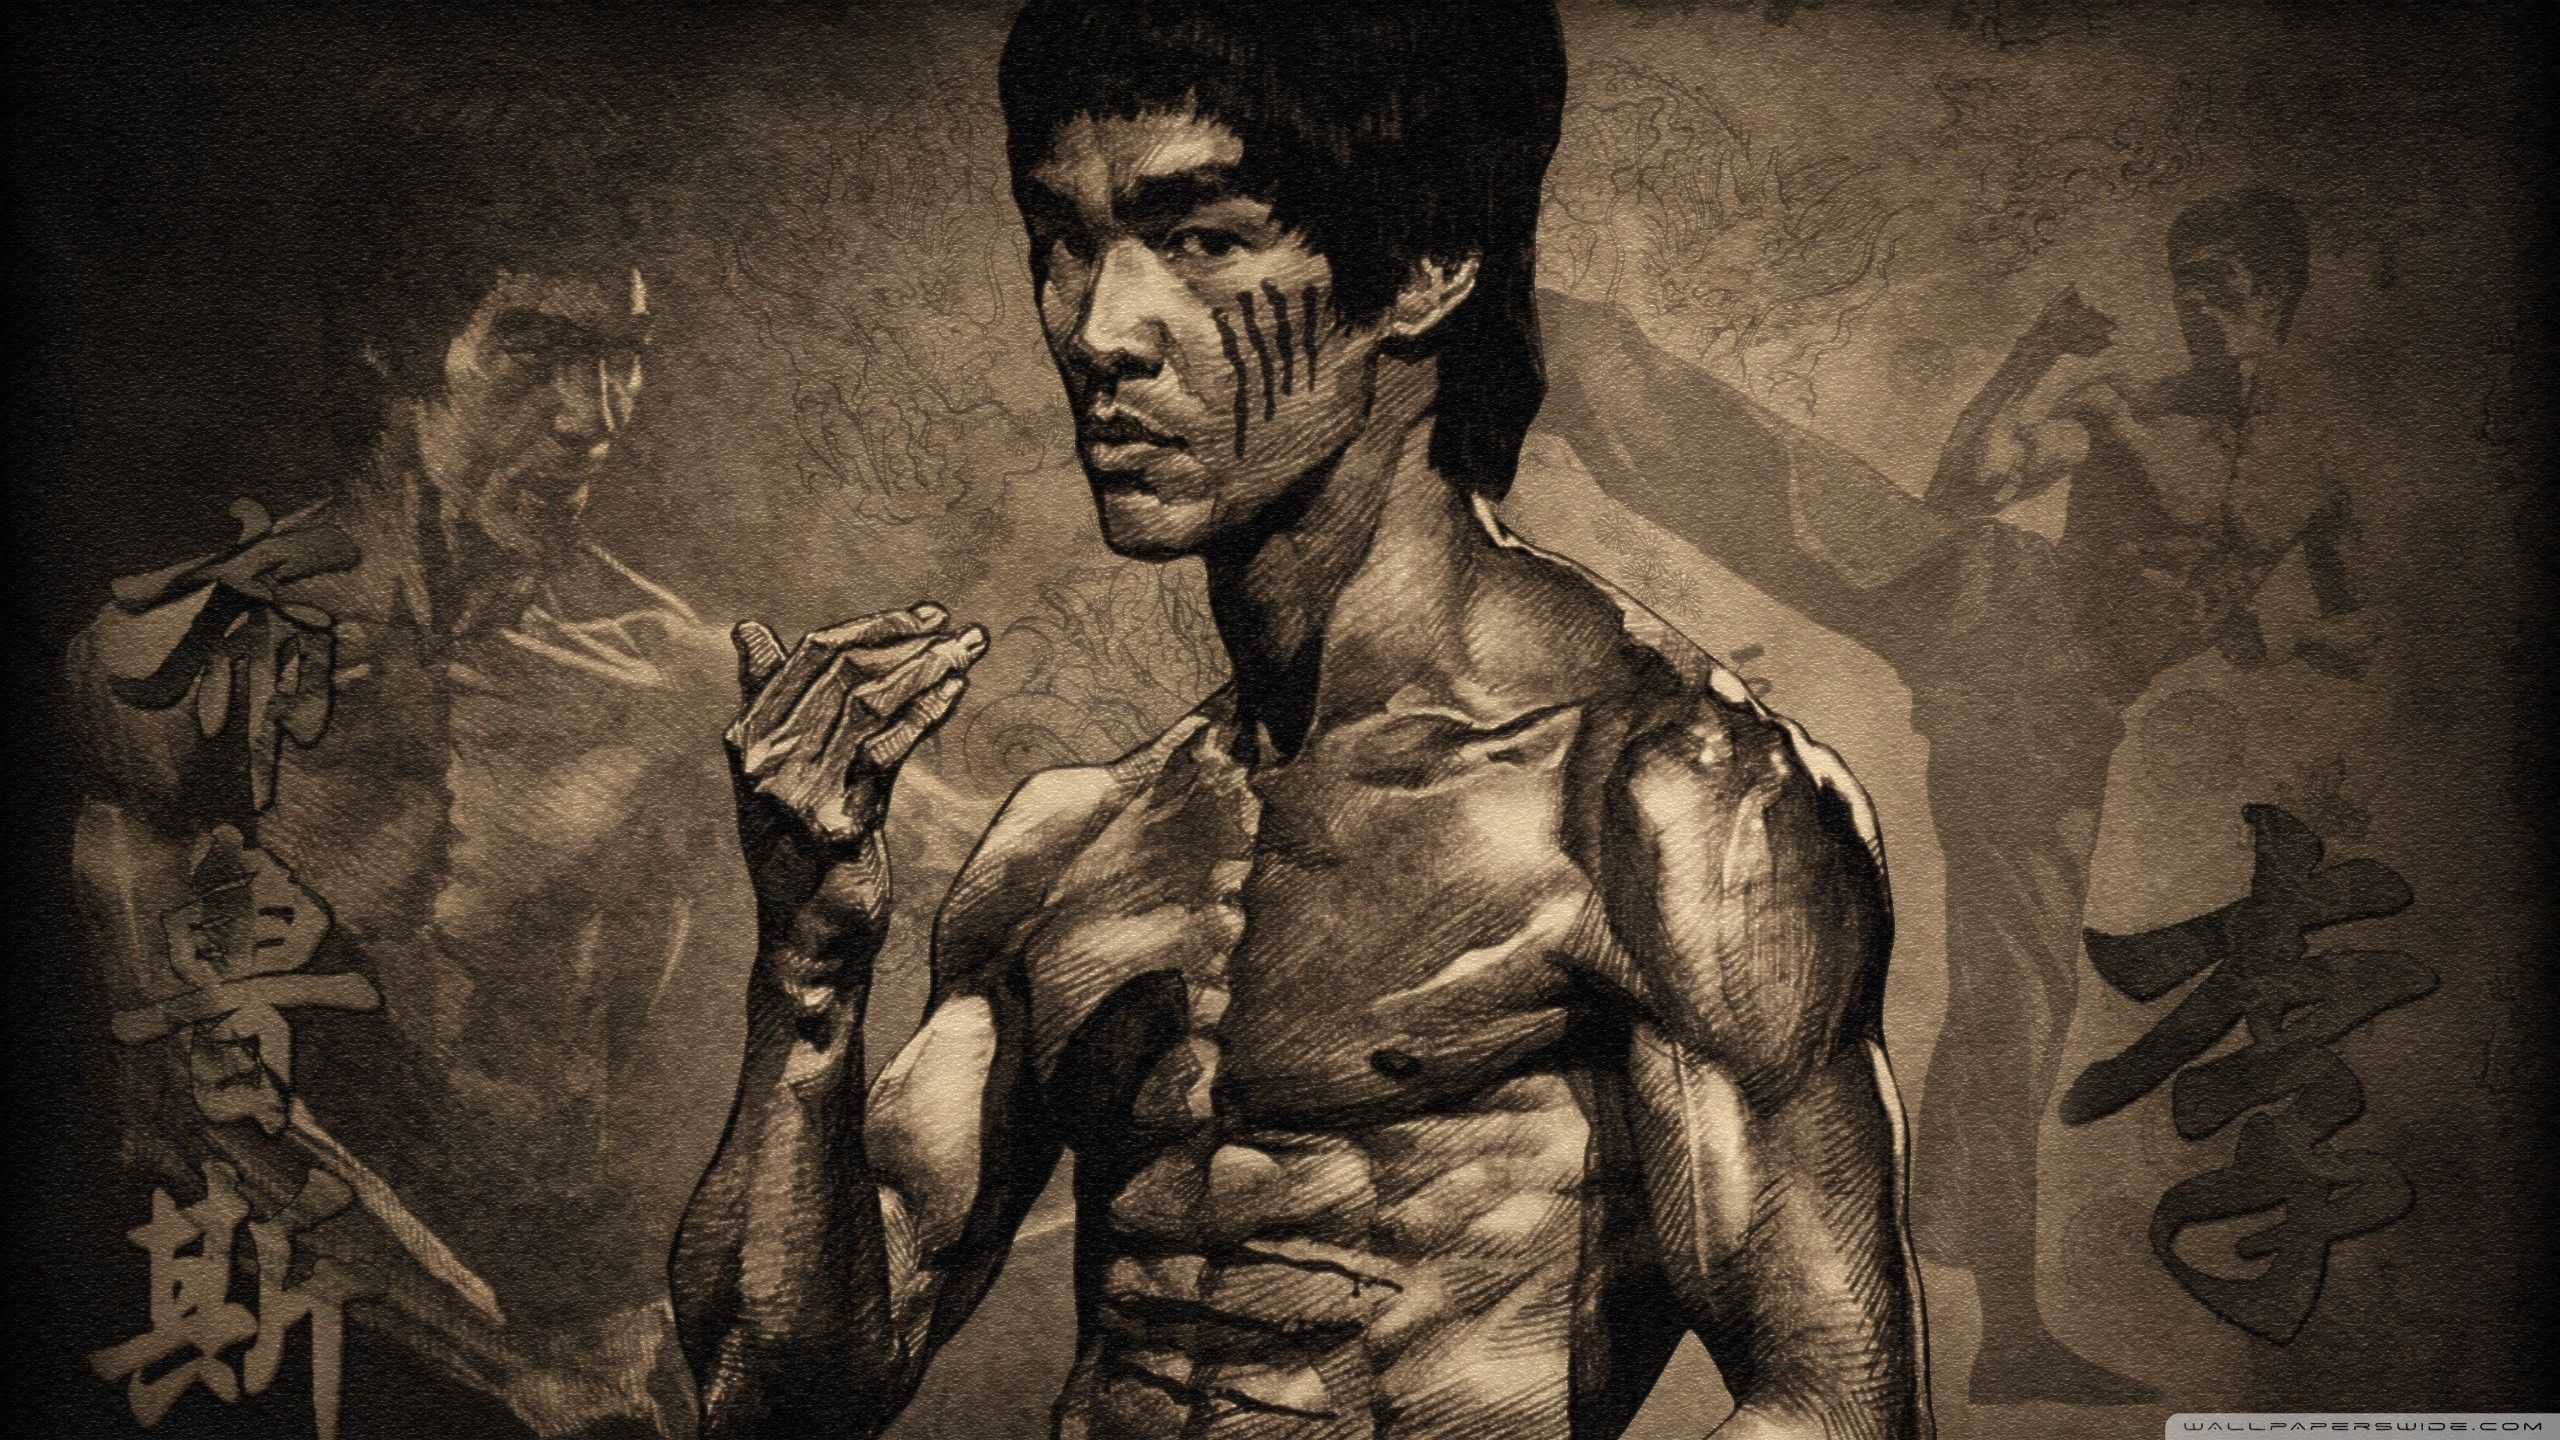 KING OF MARTIAL ARTS [2560 x 1440] Bruce lee, Martial